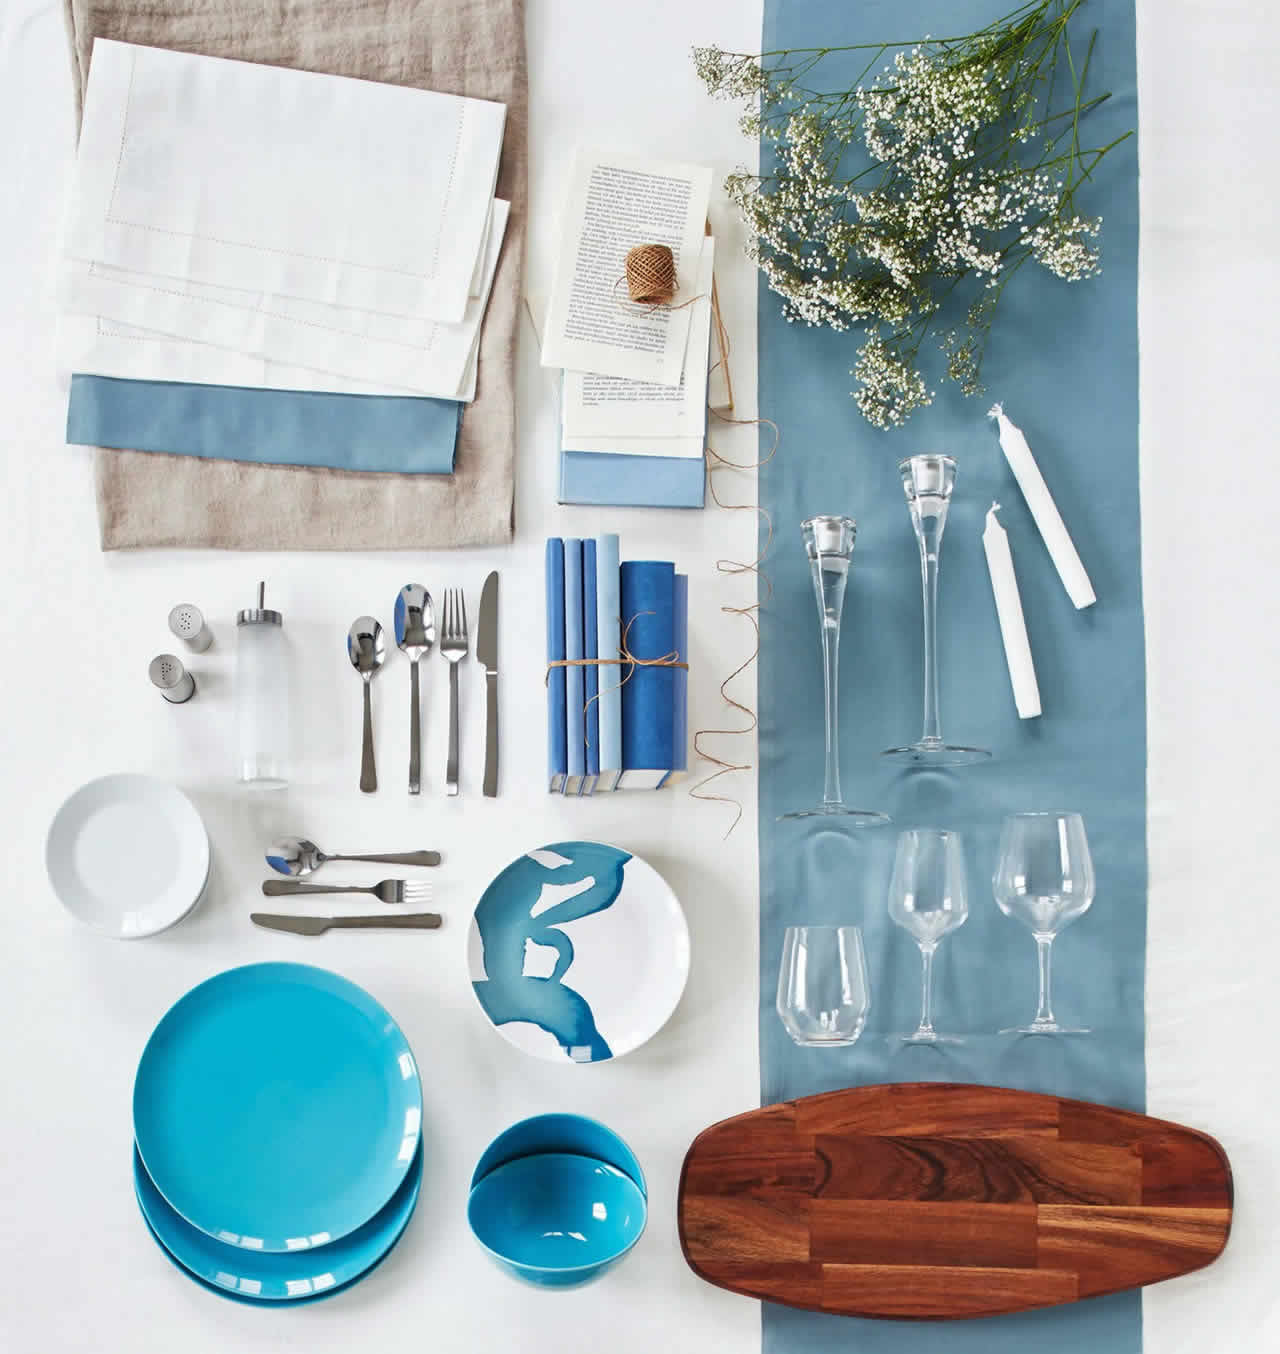 IKEA Ideas - How to set the table by the book